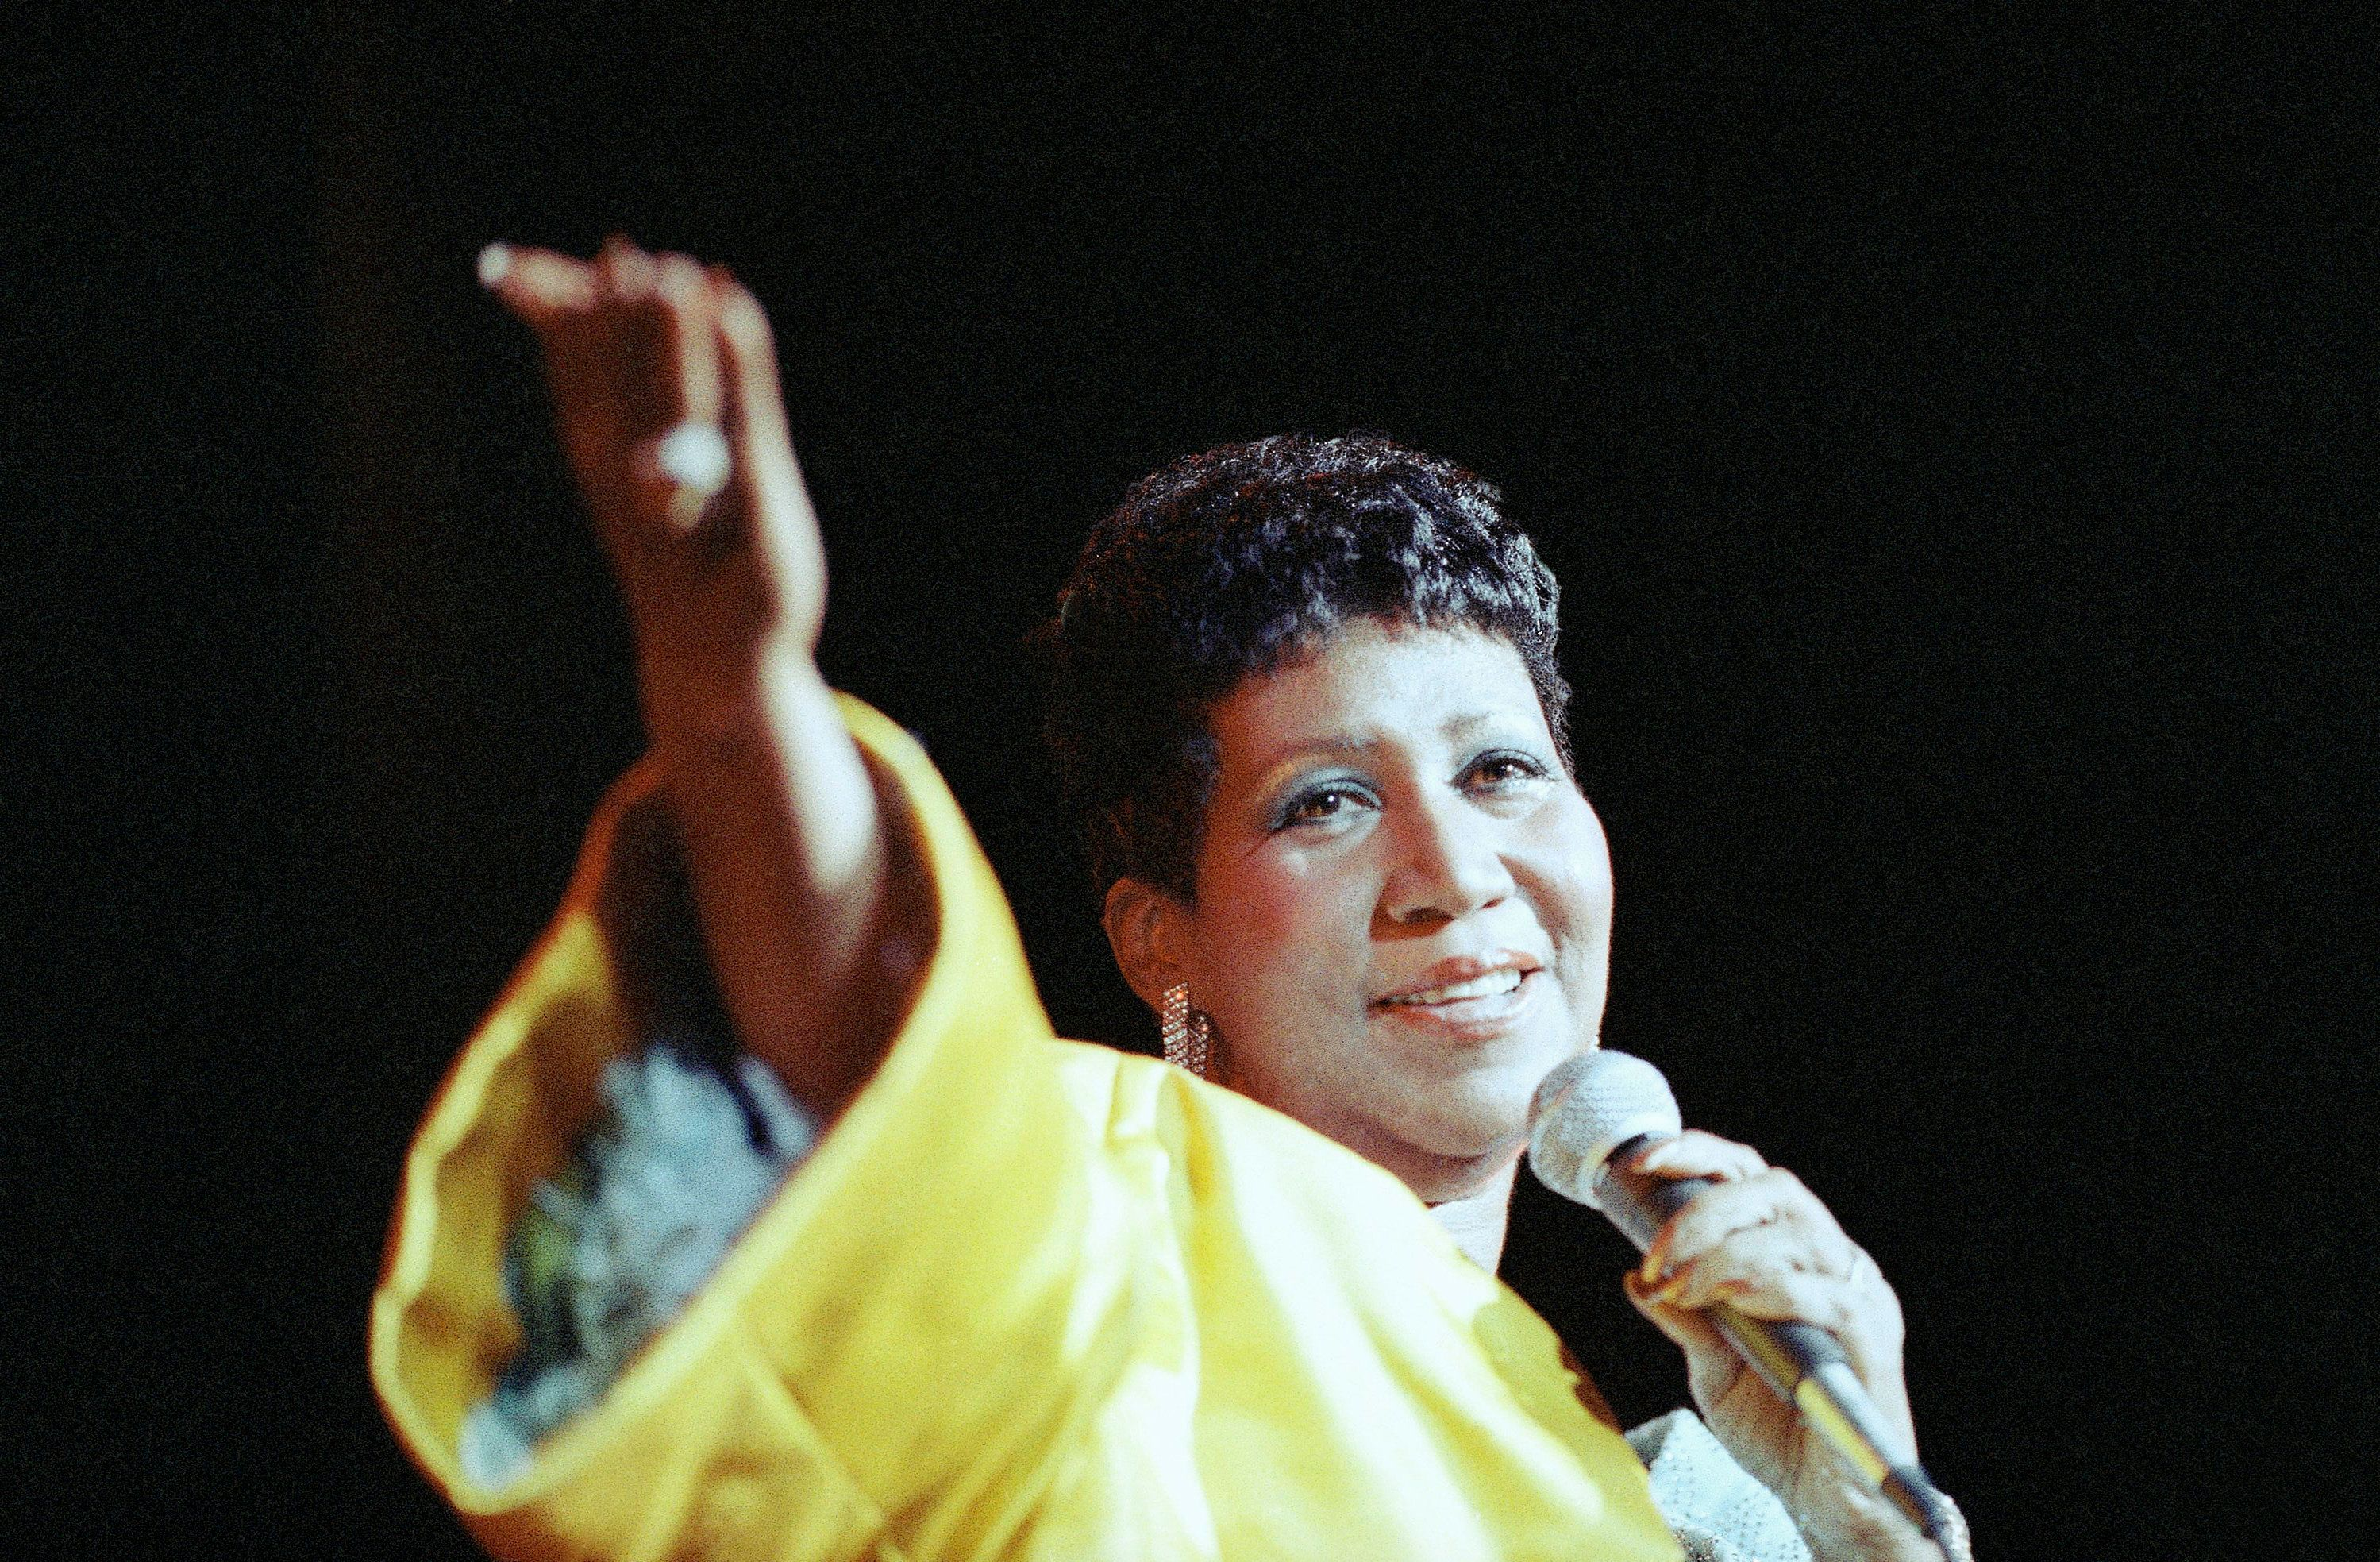 Entertainer Aretha Franklin performs at New York's Radio City Music Hall, July 6, 1989. (AP Photo/Mario Suriani)